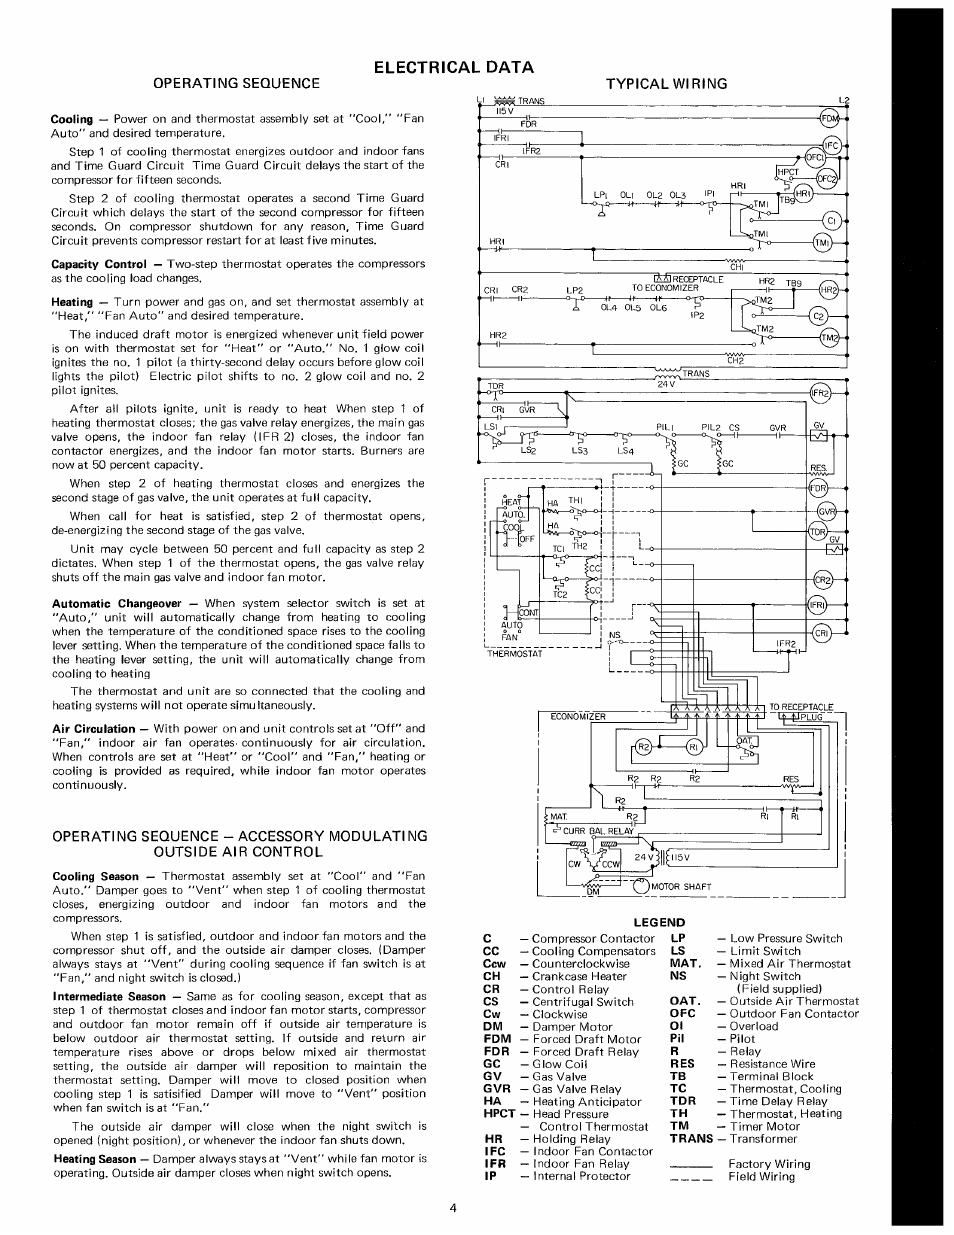 us army technical manual tm 9 2350 277 20 4 carrier personnel full tracked armored m11313 nsn 2350 01 219 7577 eic aey carrier command post eic afc carrier mechanized smok